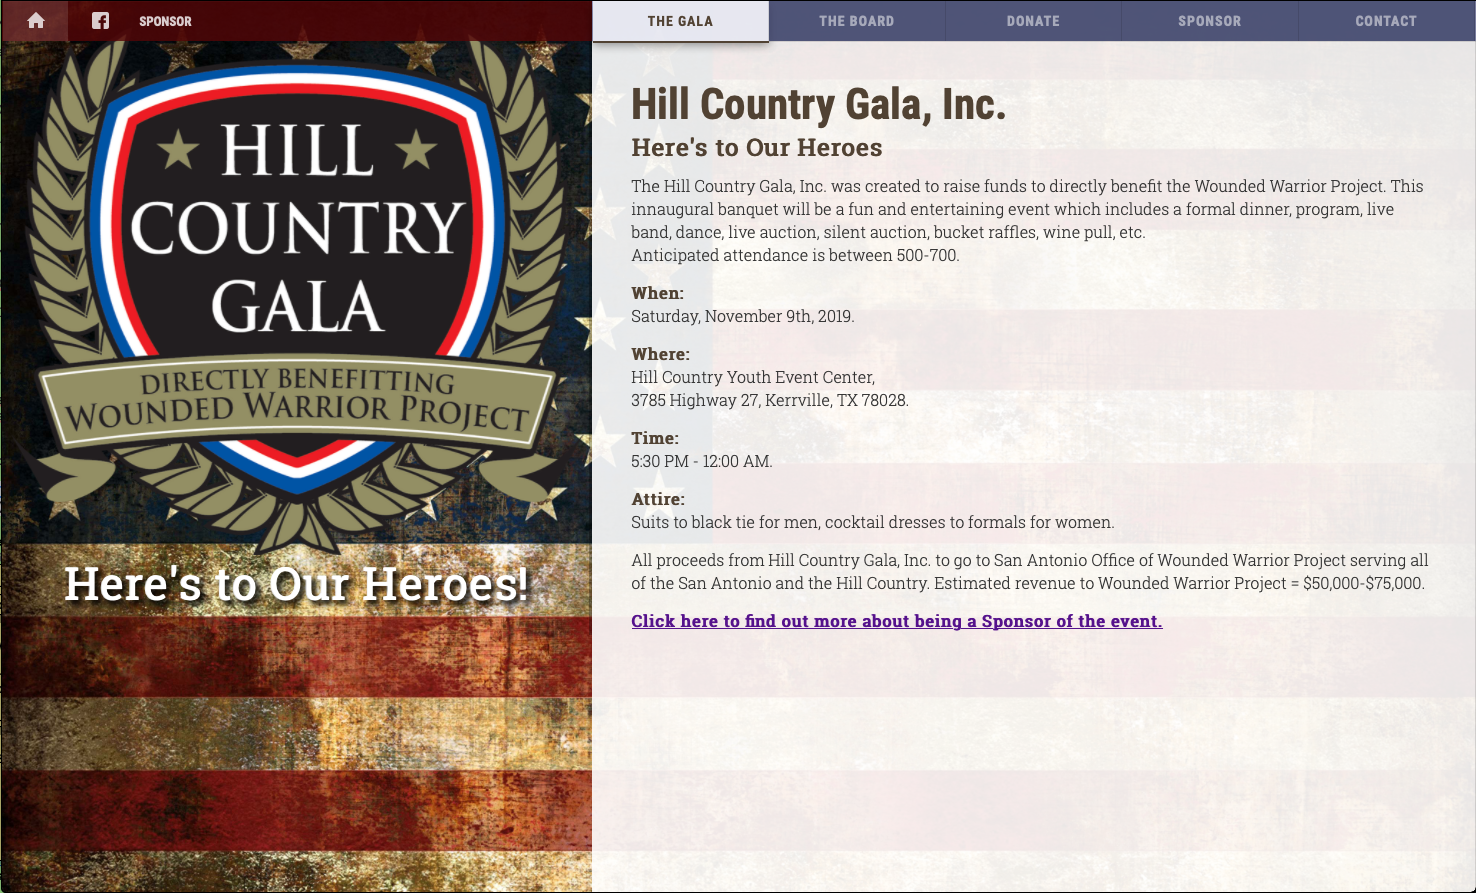 Hill Country Gala